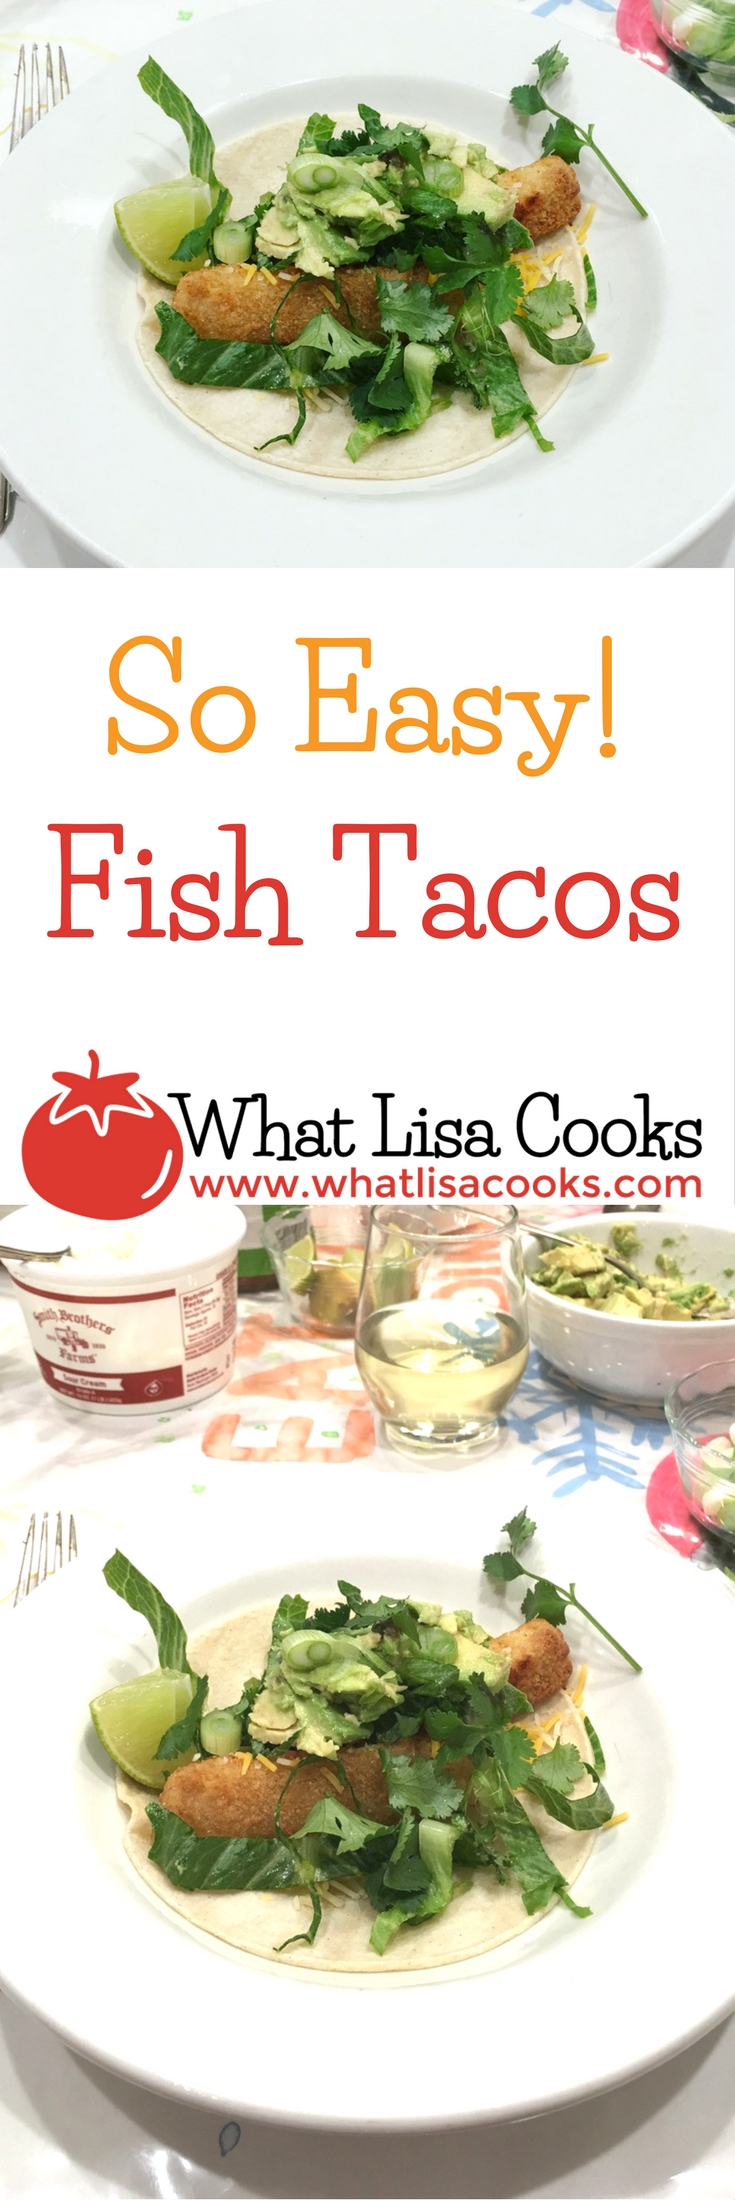 Must try! the easiest way to have fish tacos at home.